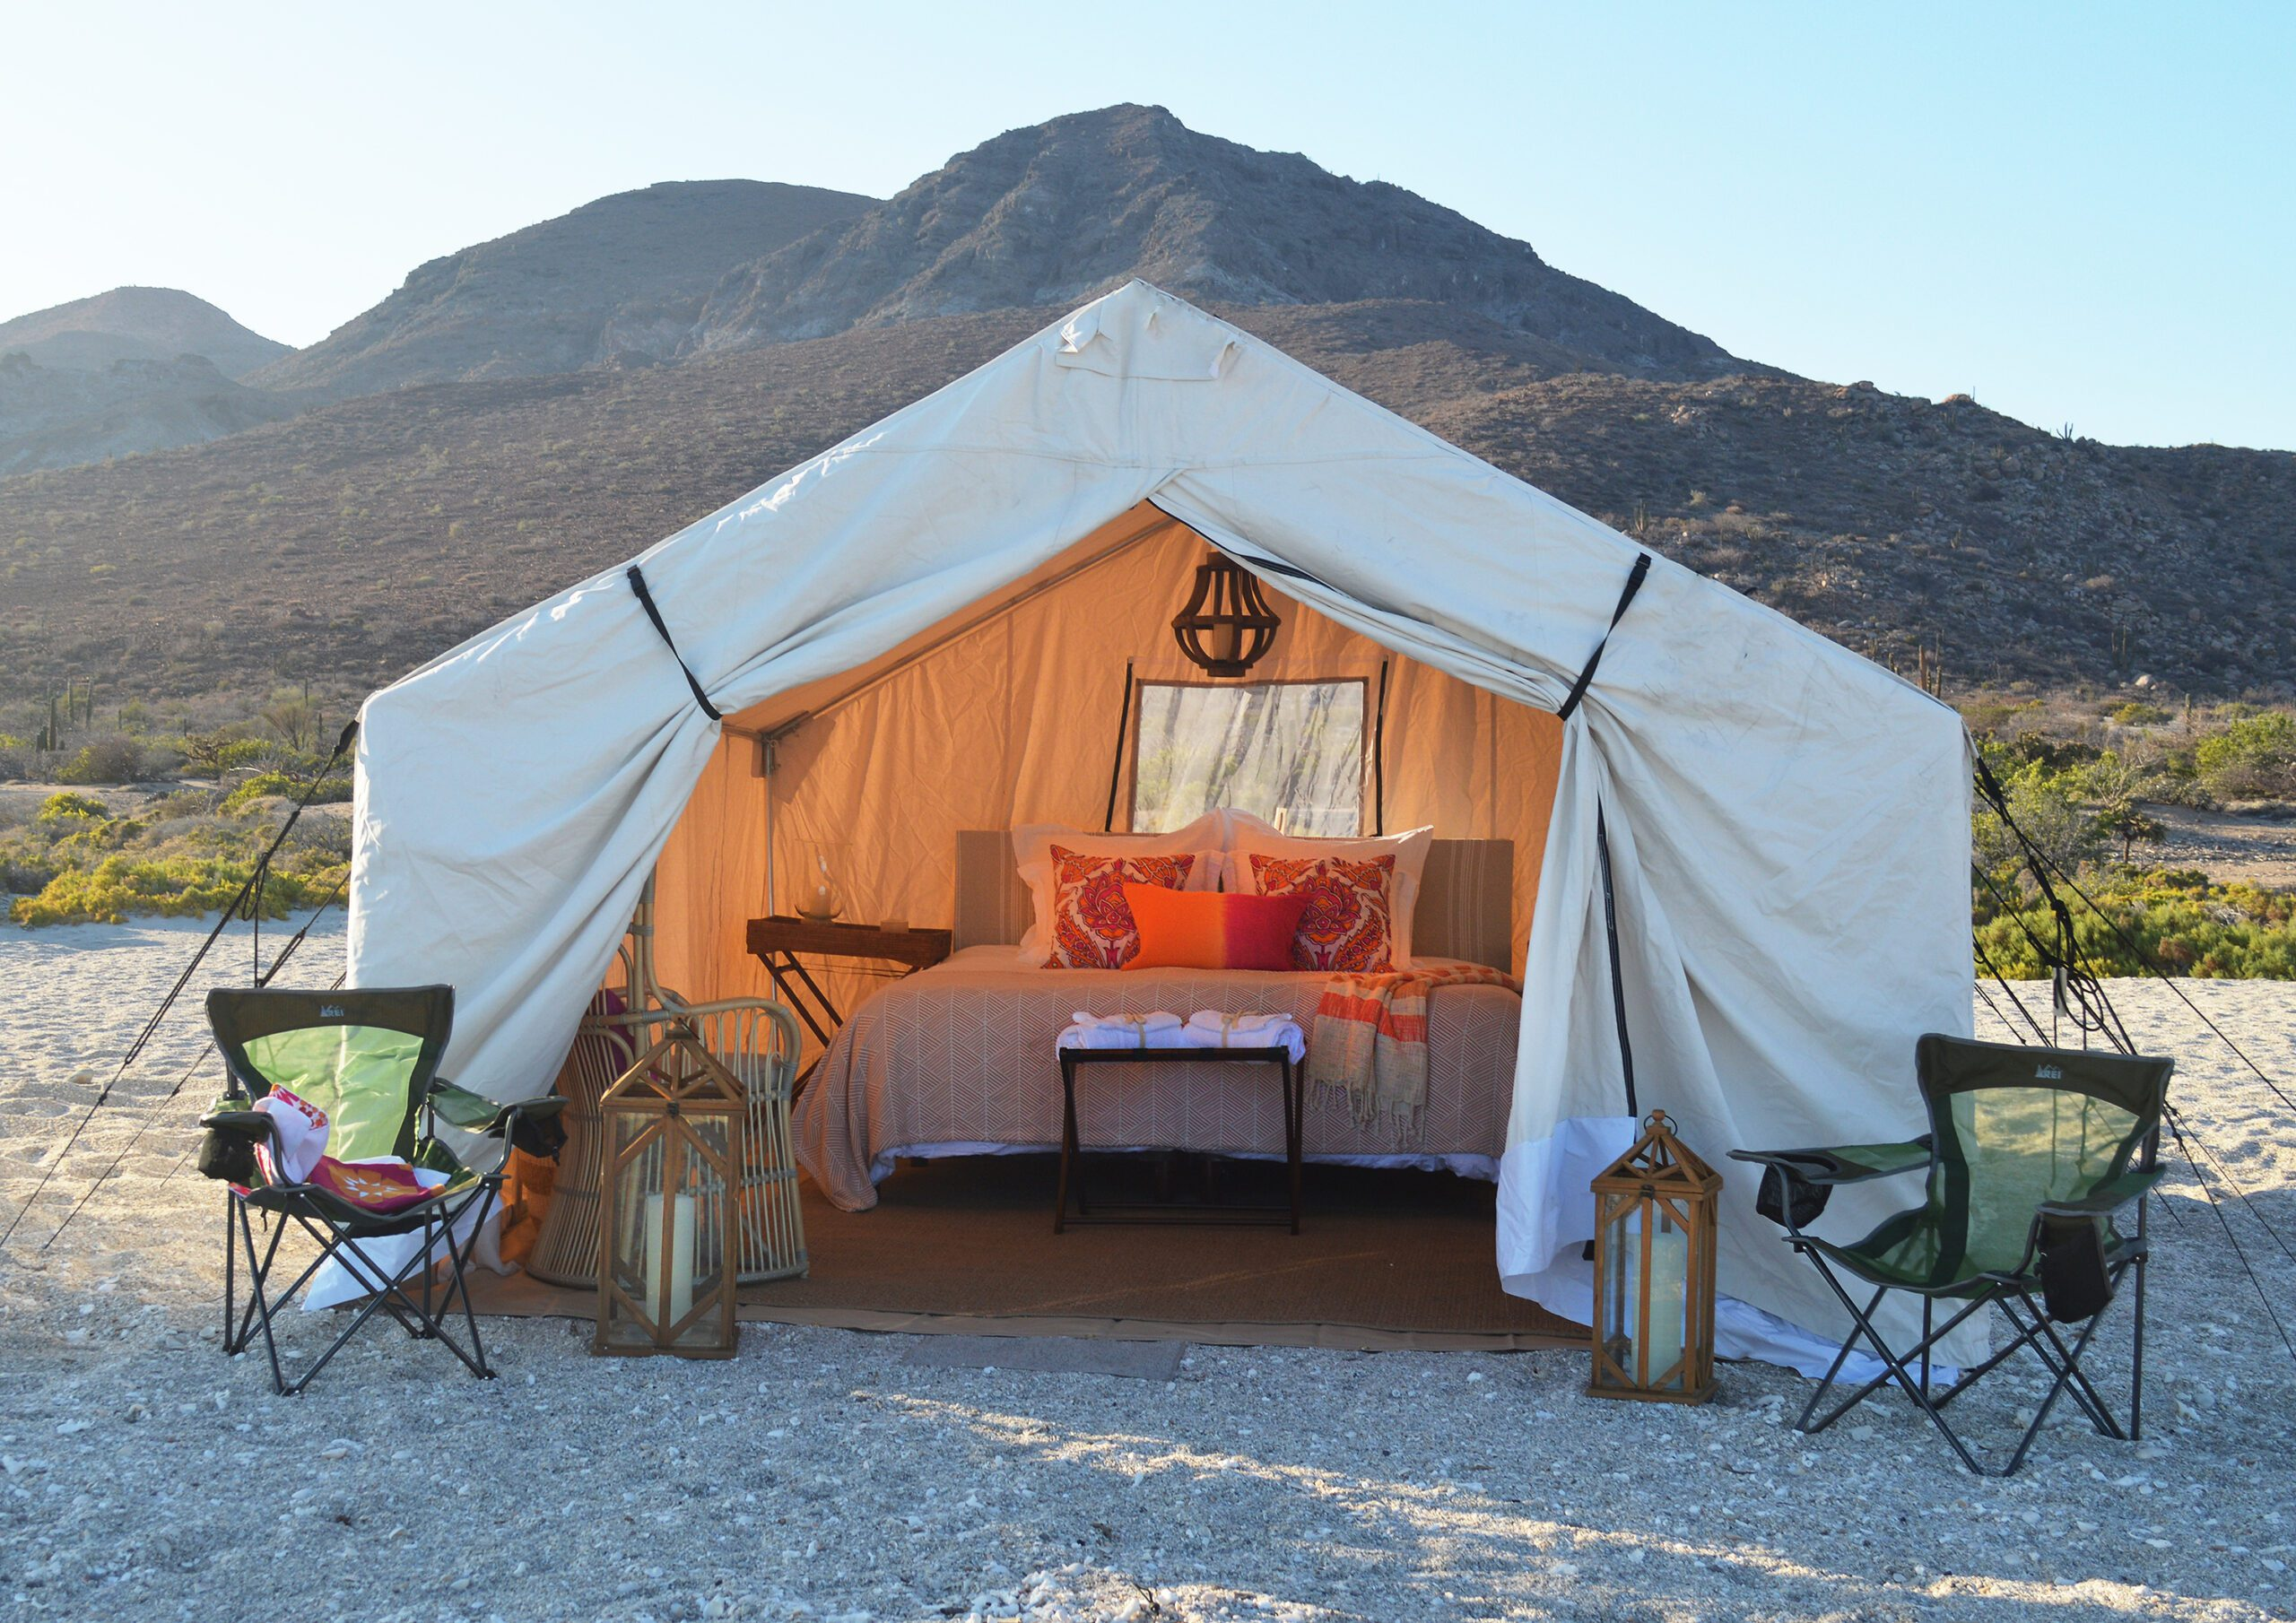 mexico safari style luxury tent on beach